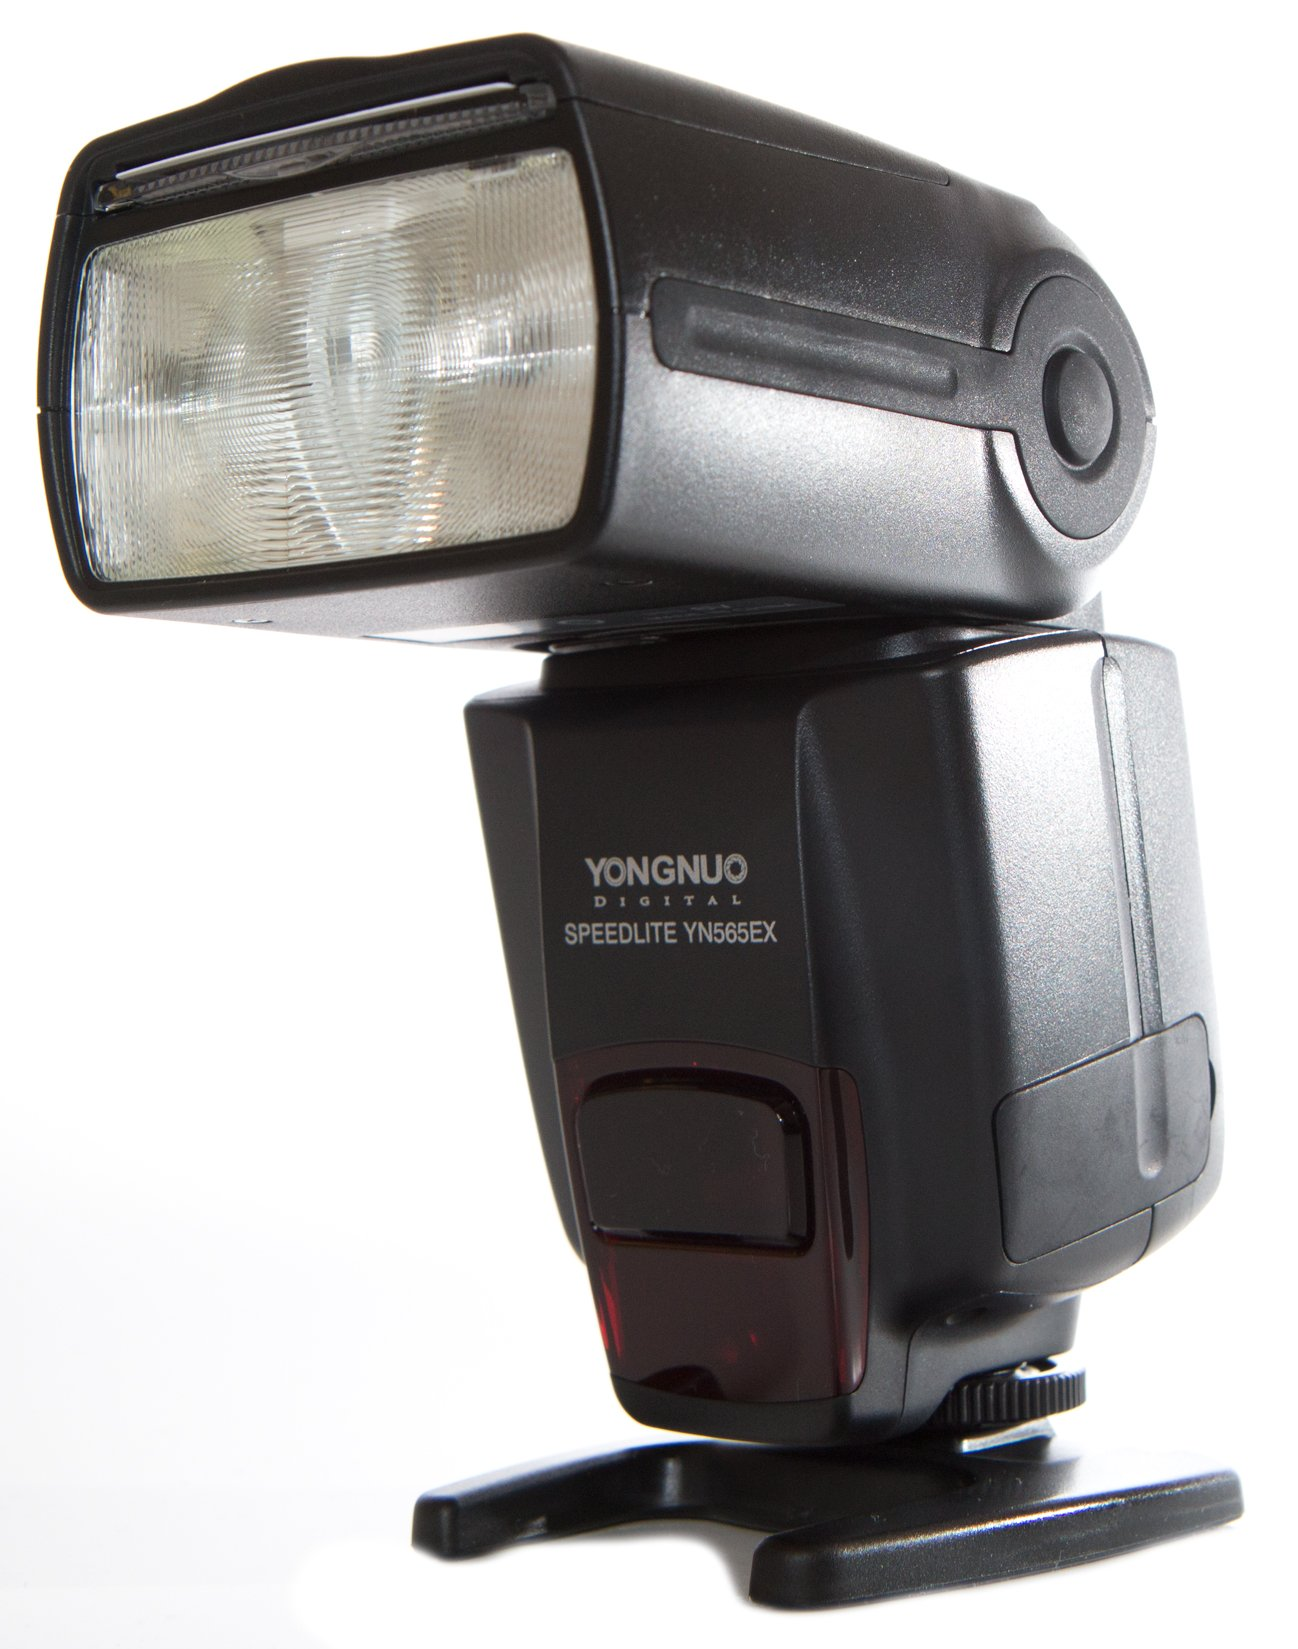 Yongnuo YN565EXC-USA E-TTL Speedlite Flash for Canon, GN58, US Warranty (Black) by Yongnuo